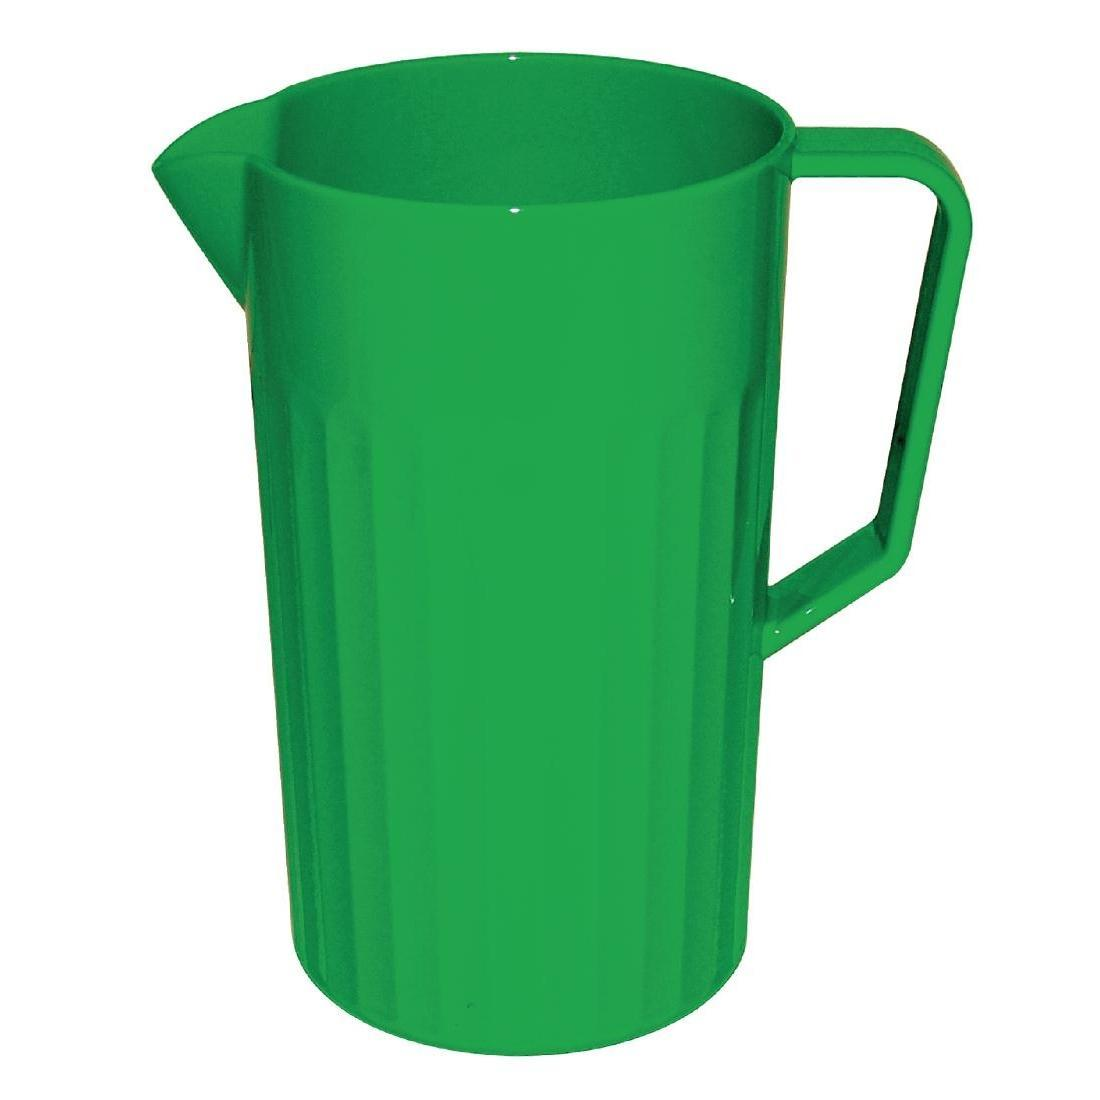 Kristallon Polycarbonate Jug Green 1.4Ltr - Each - CE279